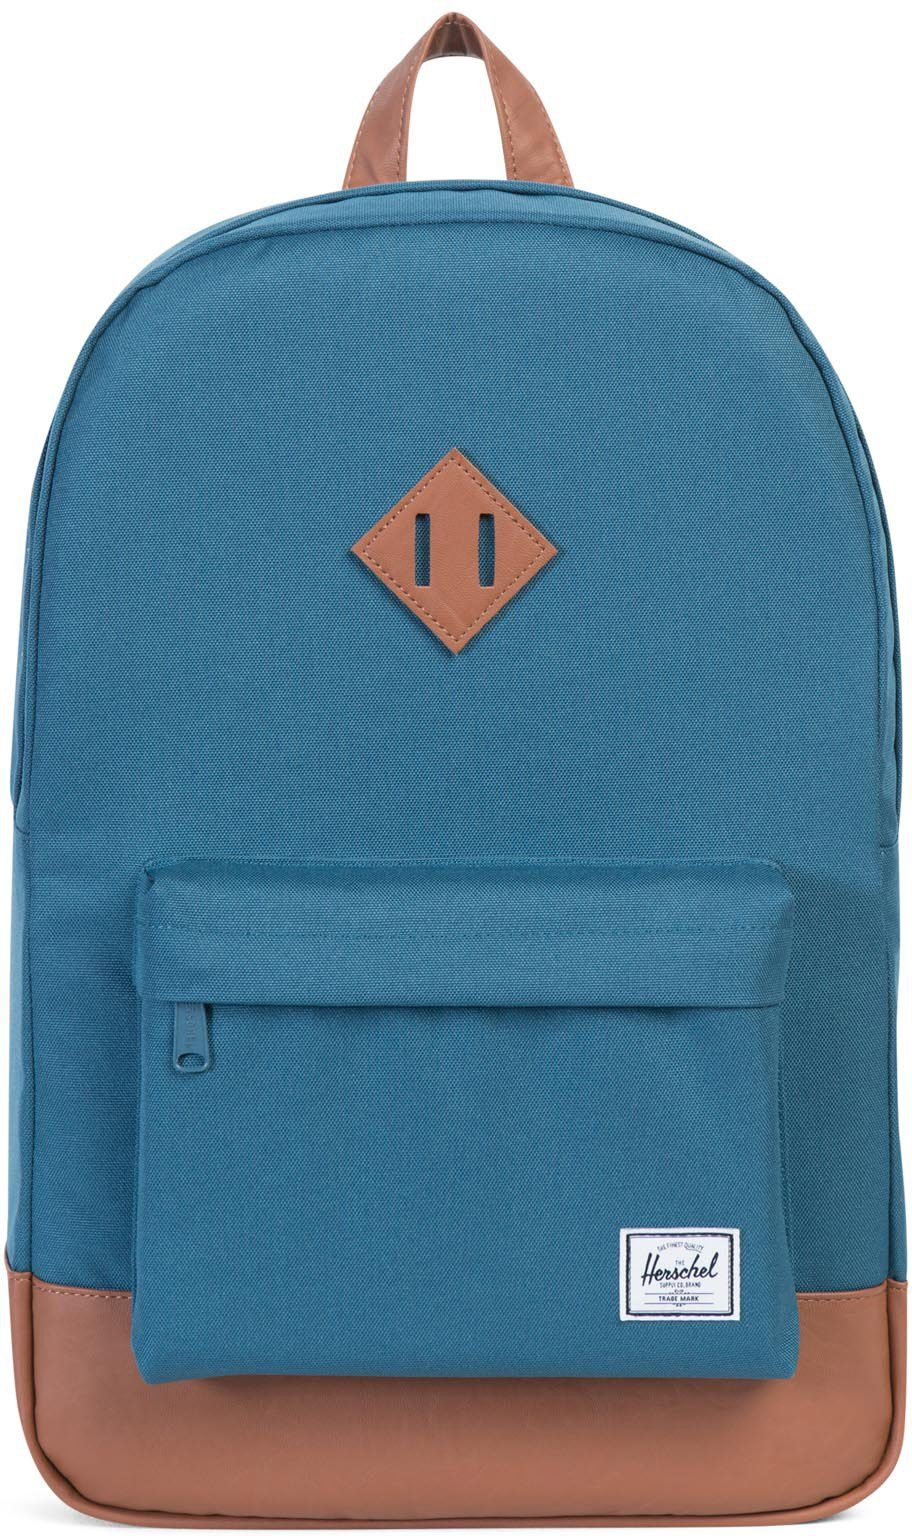 Herschel Rucksack mit Laptopfach, »Heritage Backpack, Indian Teal«